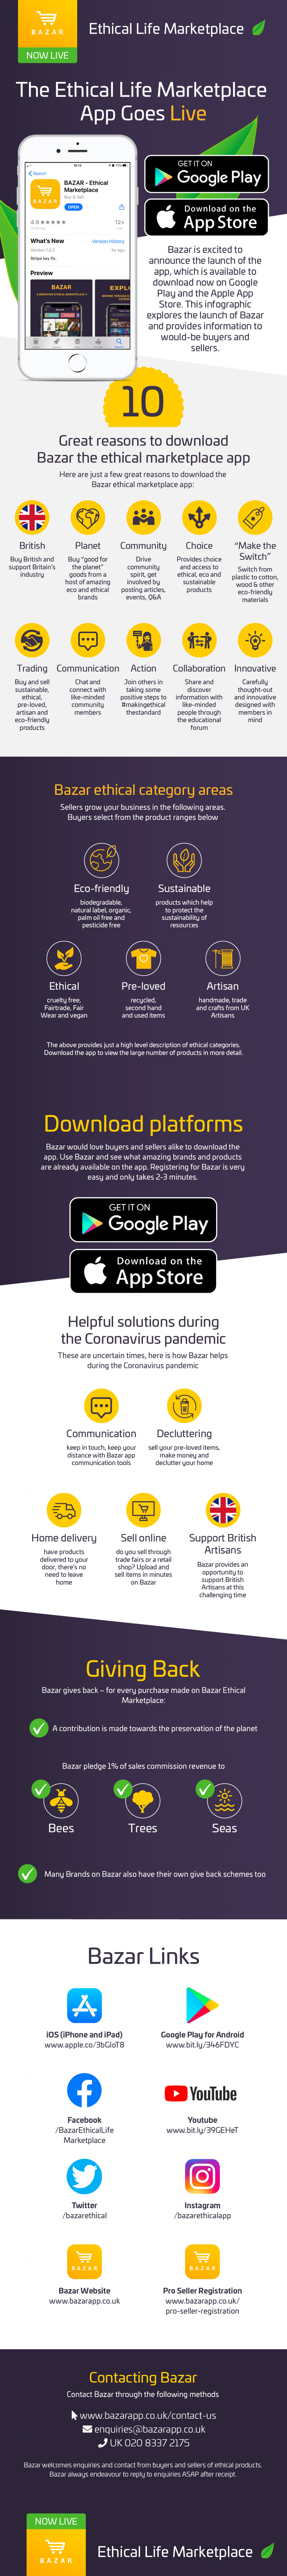 Bazar app launches infographic from the Bazar ethical life marketplace Infographic